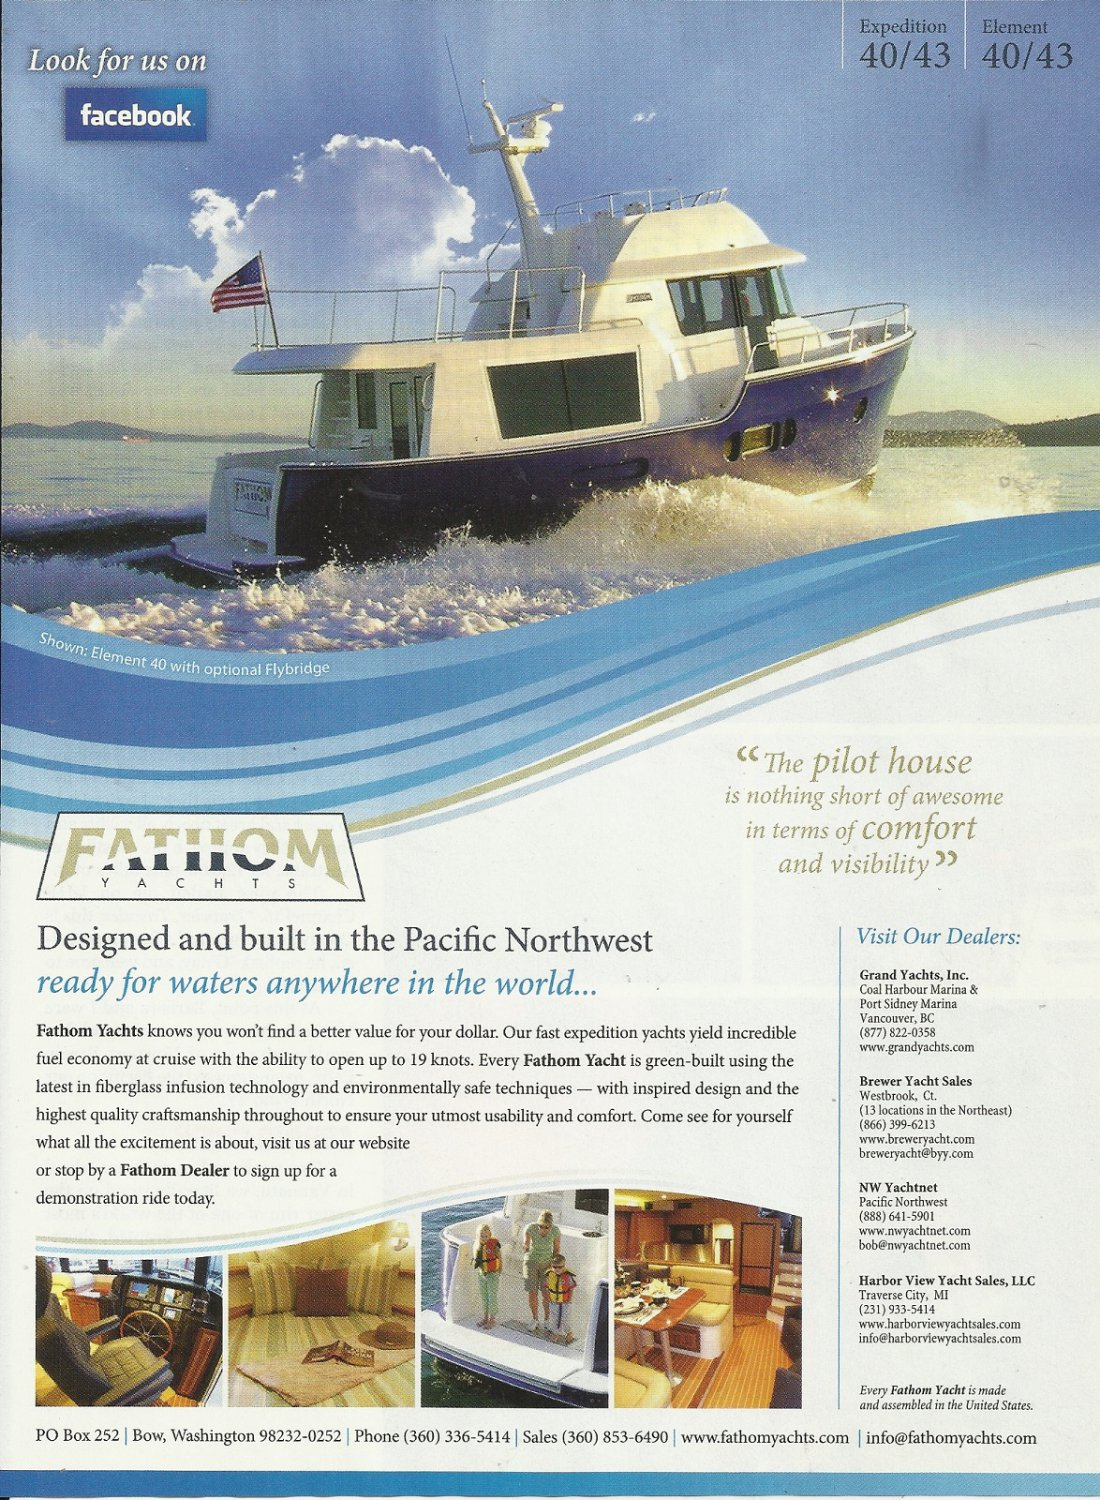 2011 Fathom Yachts Color Ad- The Element 40